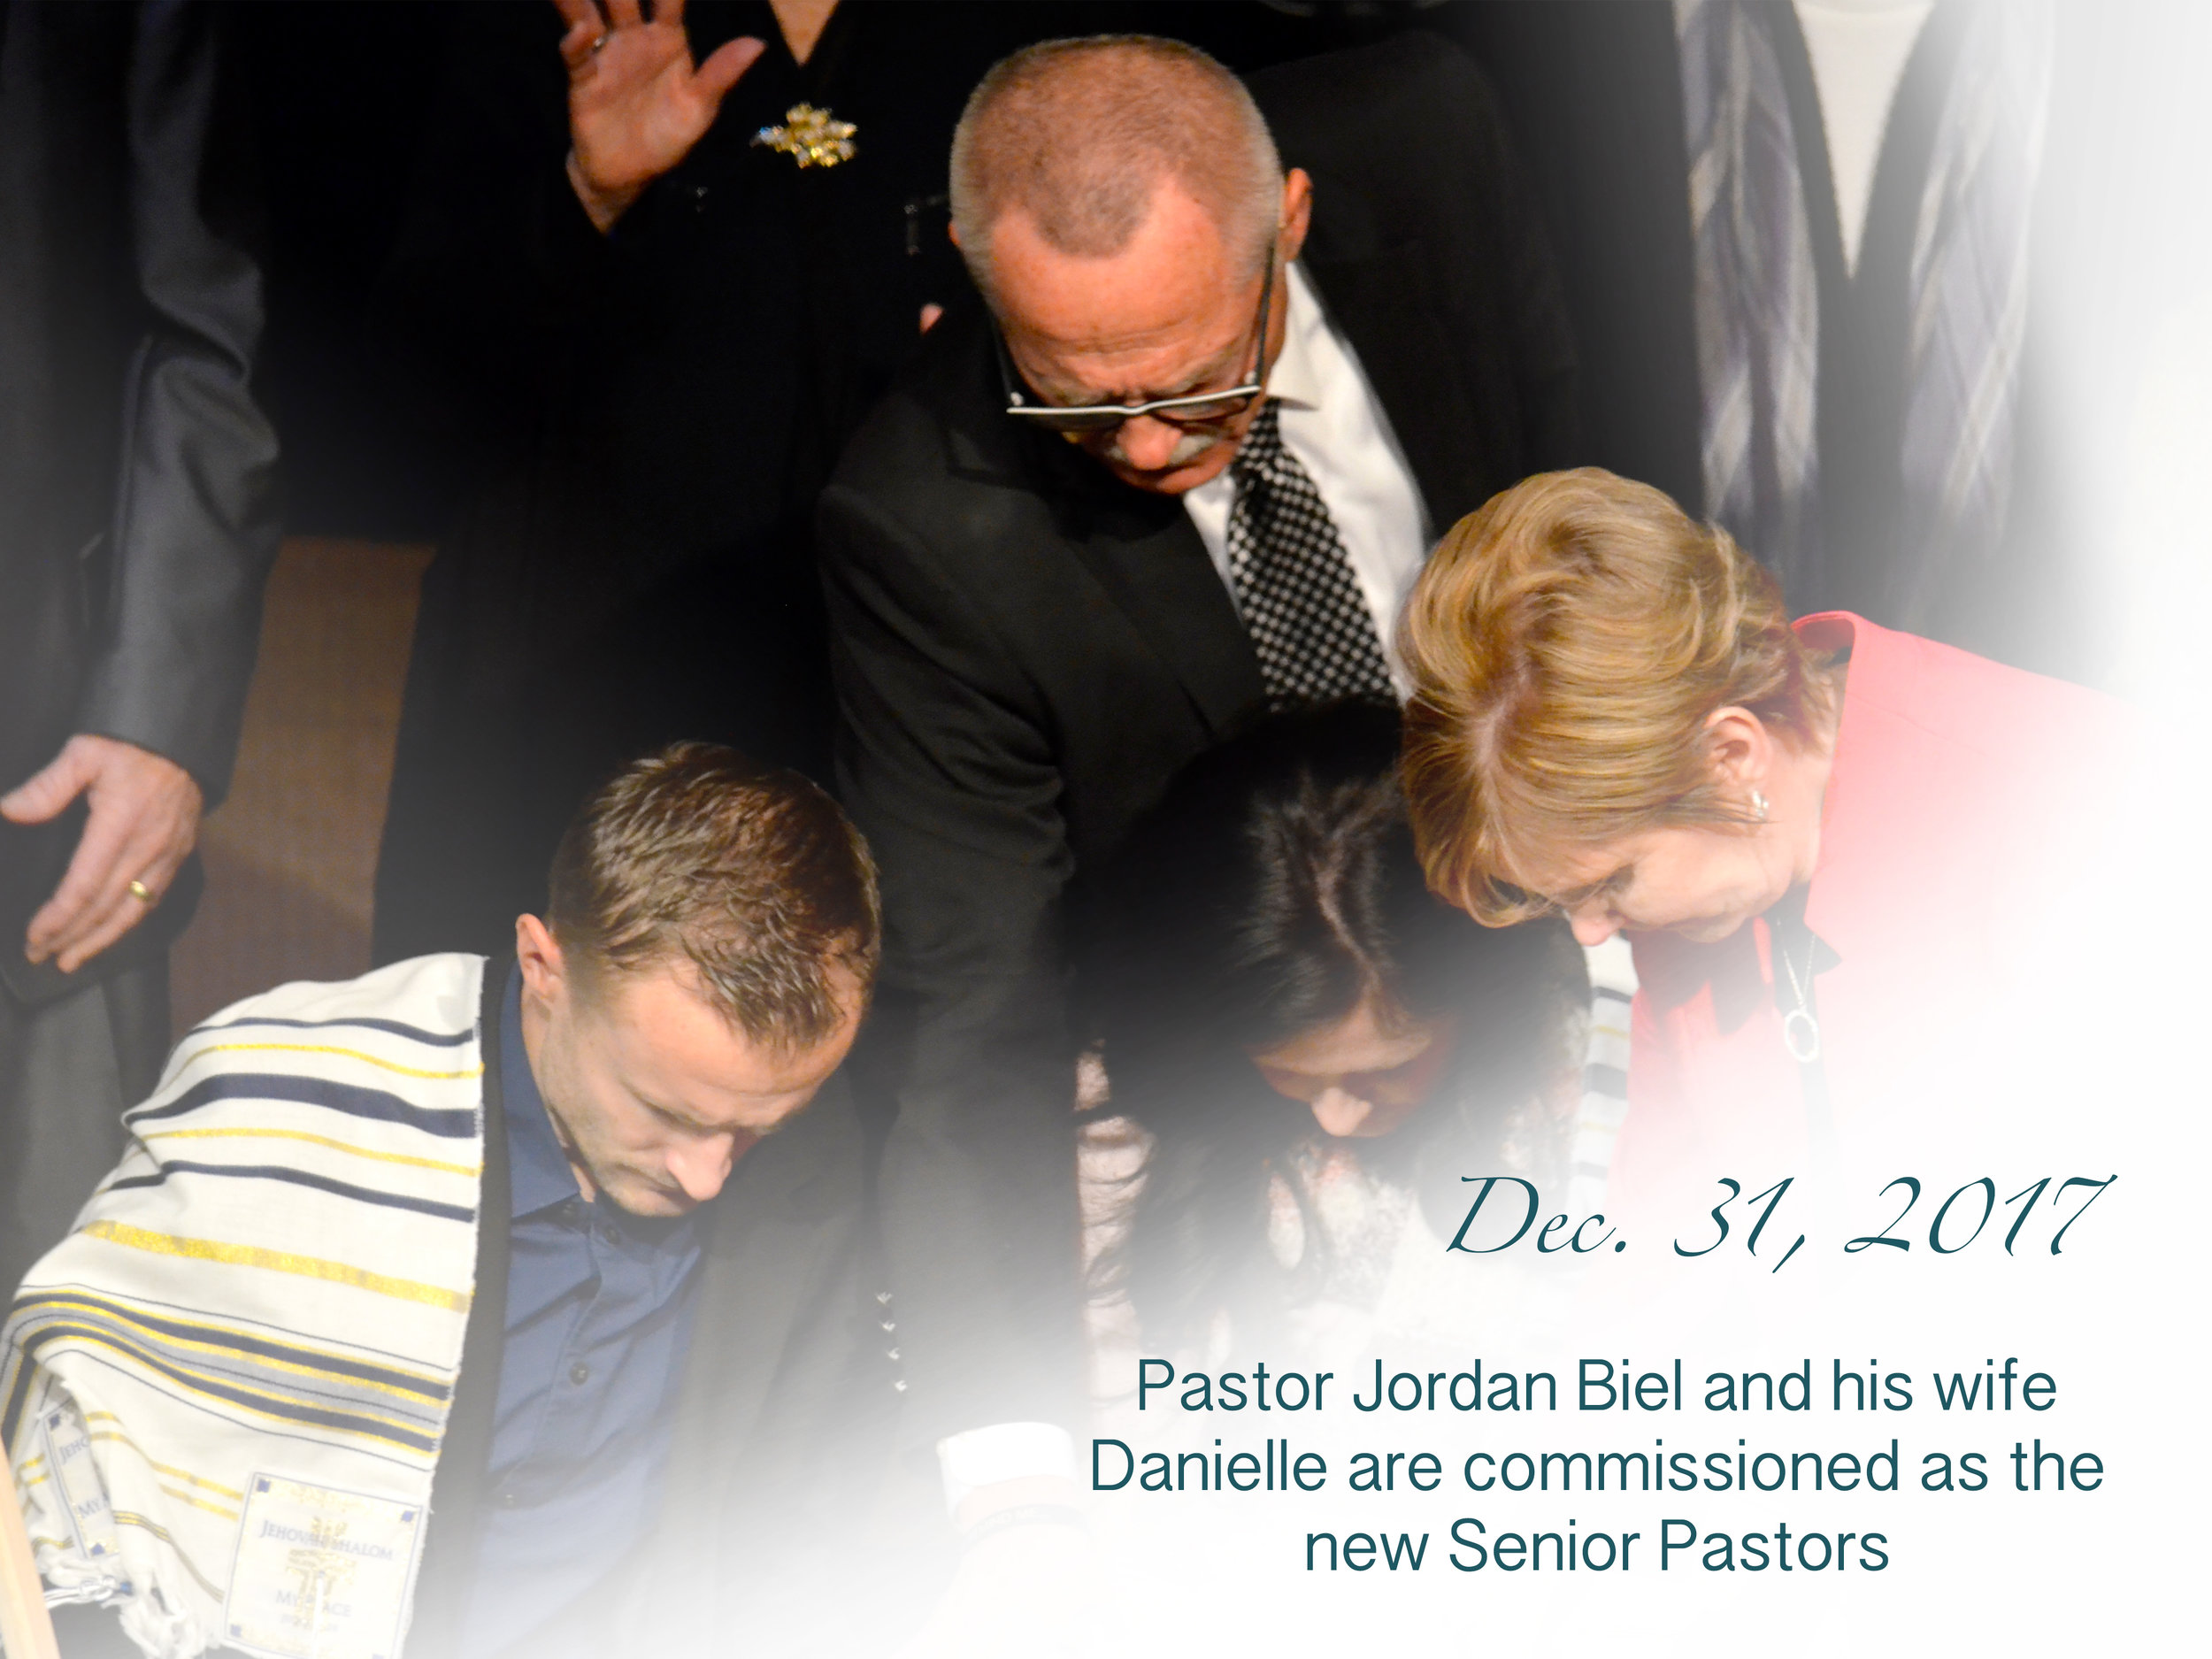 Jordan Biel Commissioned as Pastor